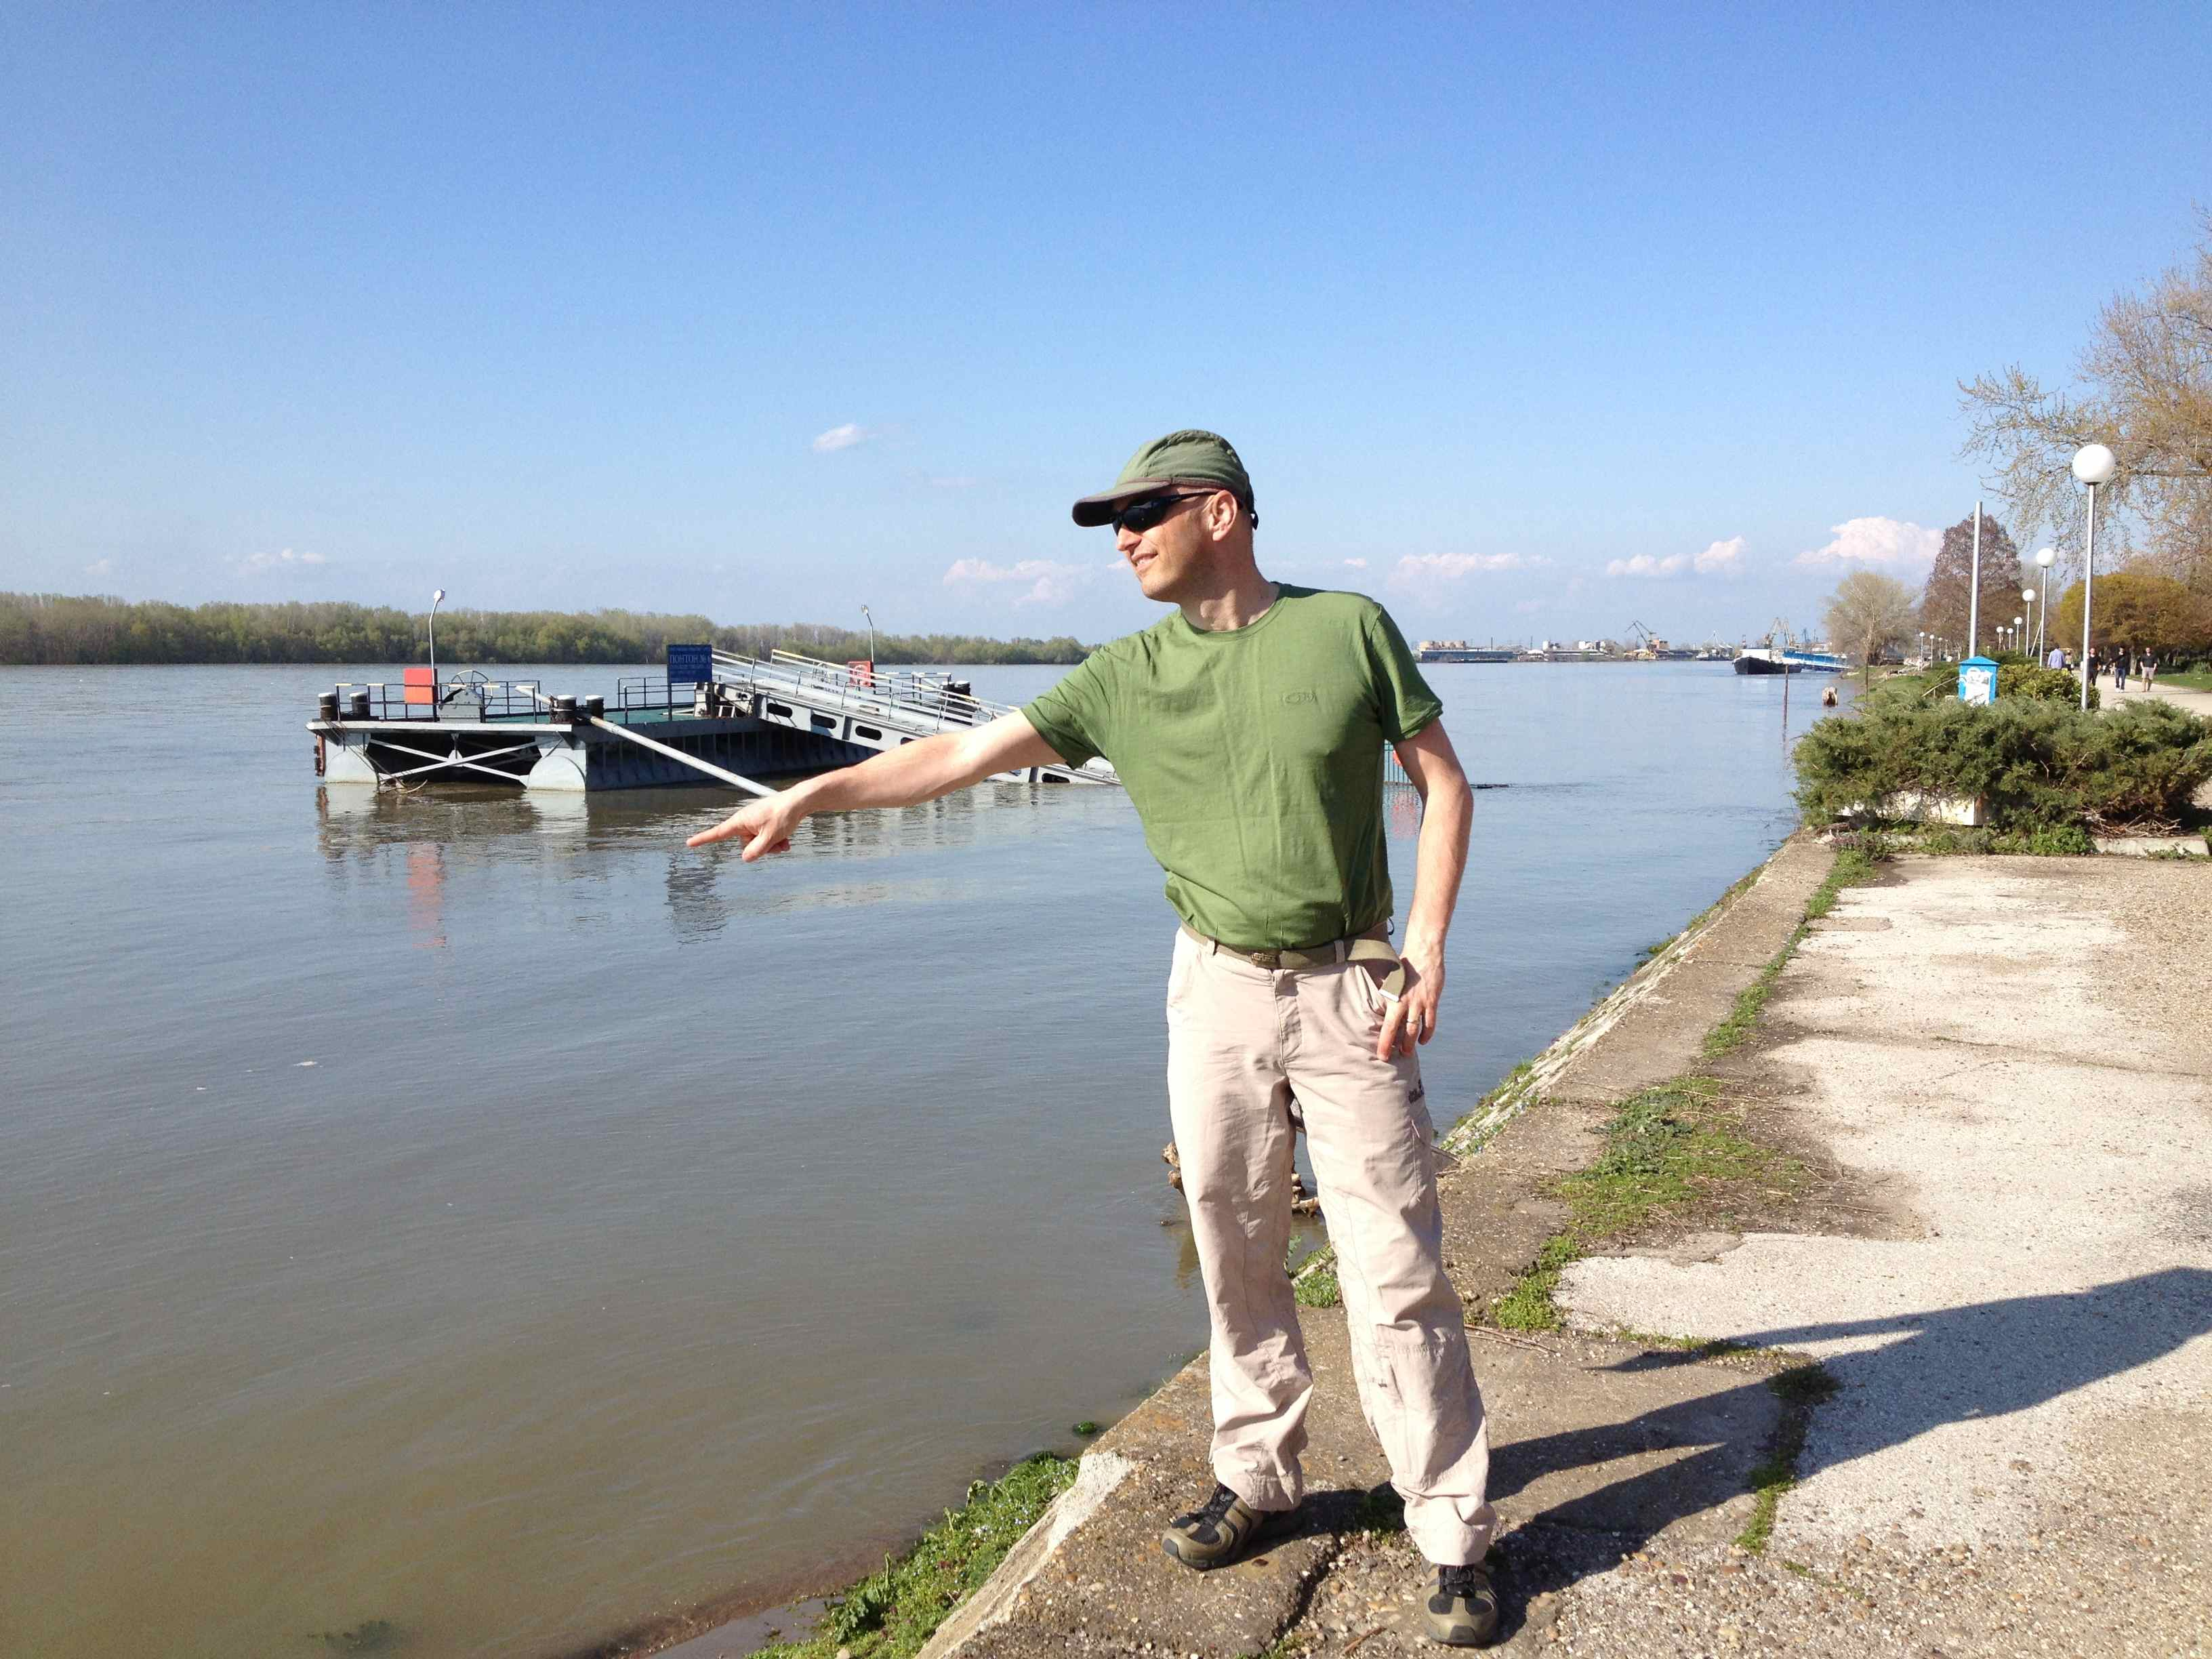 Pointing at the might river Danube